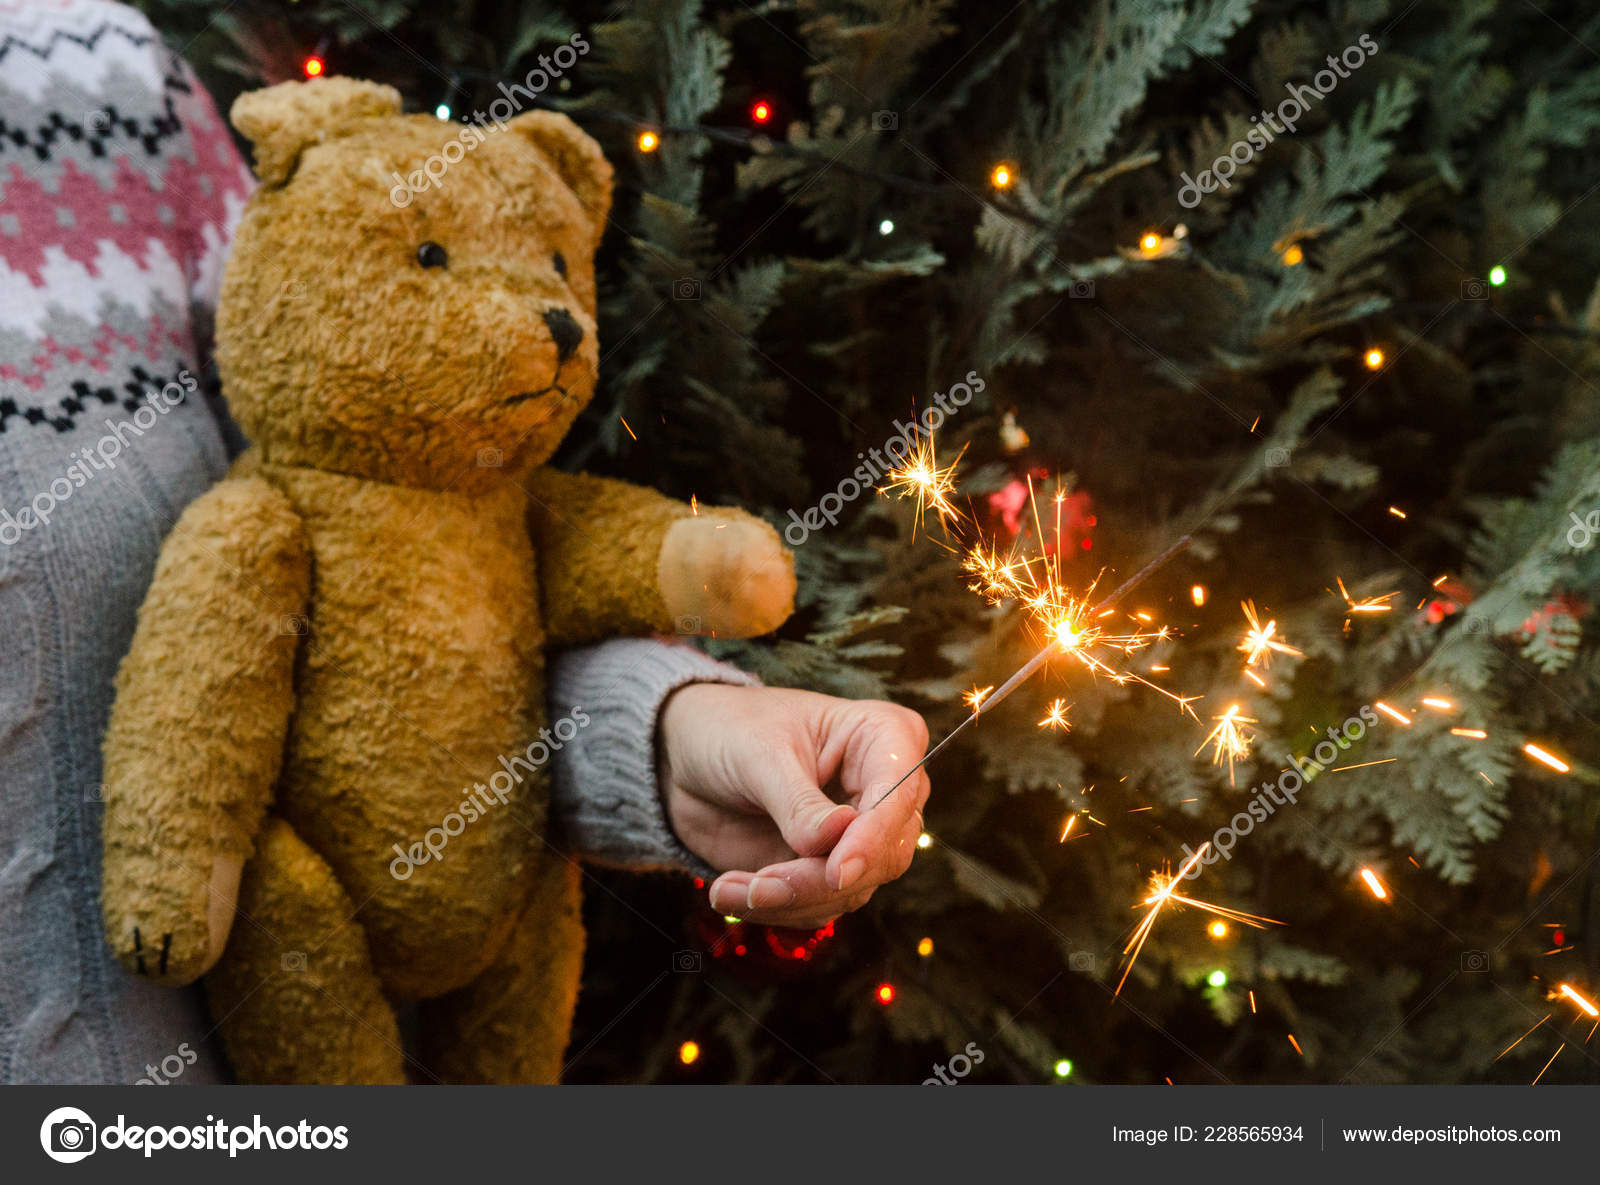 b73ec1ef82 Christmas scene - woman in knitted sweater holding an old teddy bear and  sparkler before christmas tree– stock image